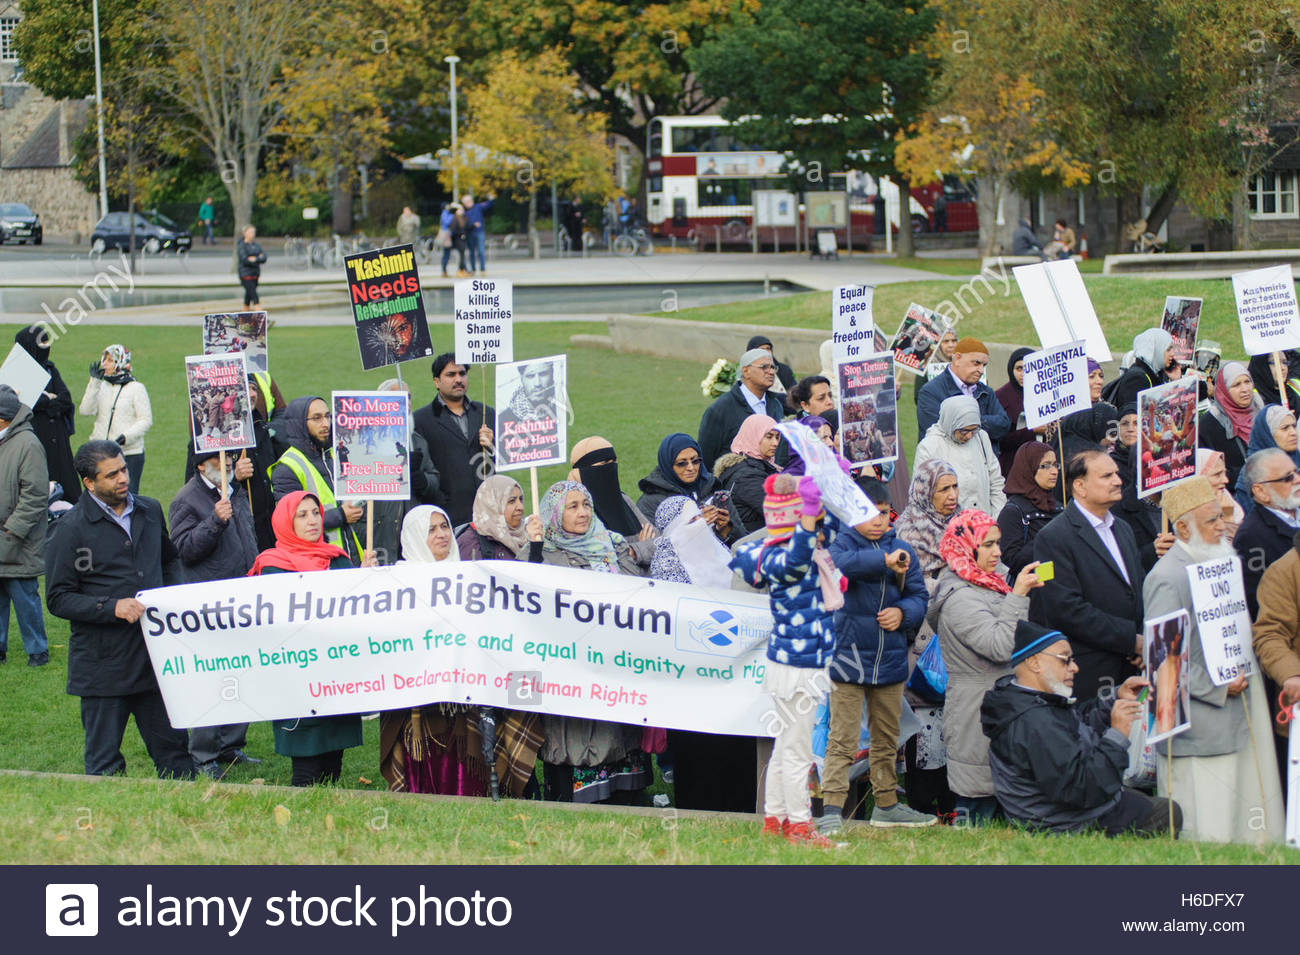 Edinburgh, UK. 27 October, 2016. Protesters hold up placards and posters. Credit:  Roger Gaisford/Alamy Live News. - Stock Image